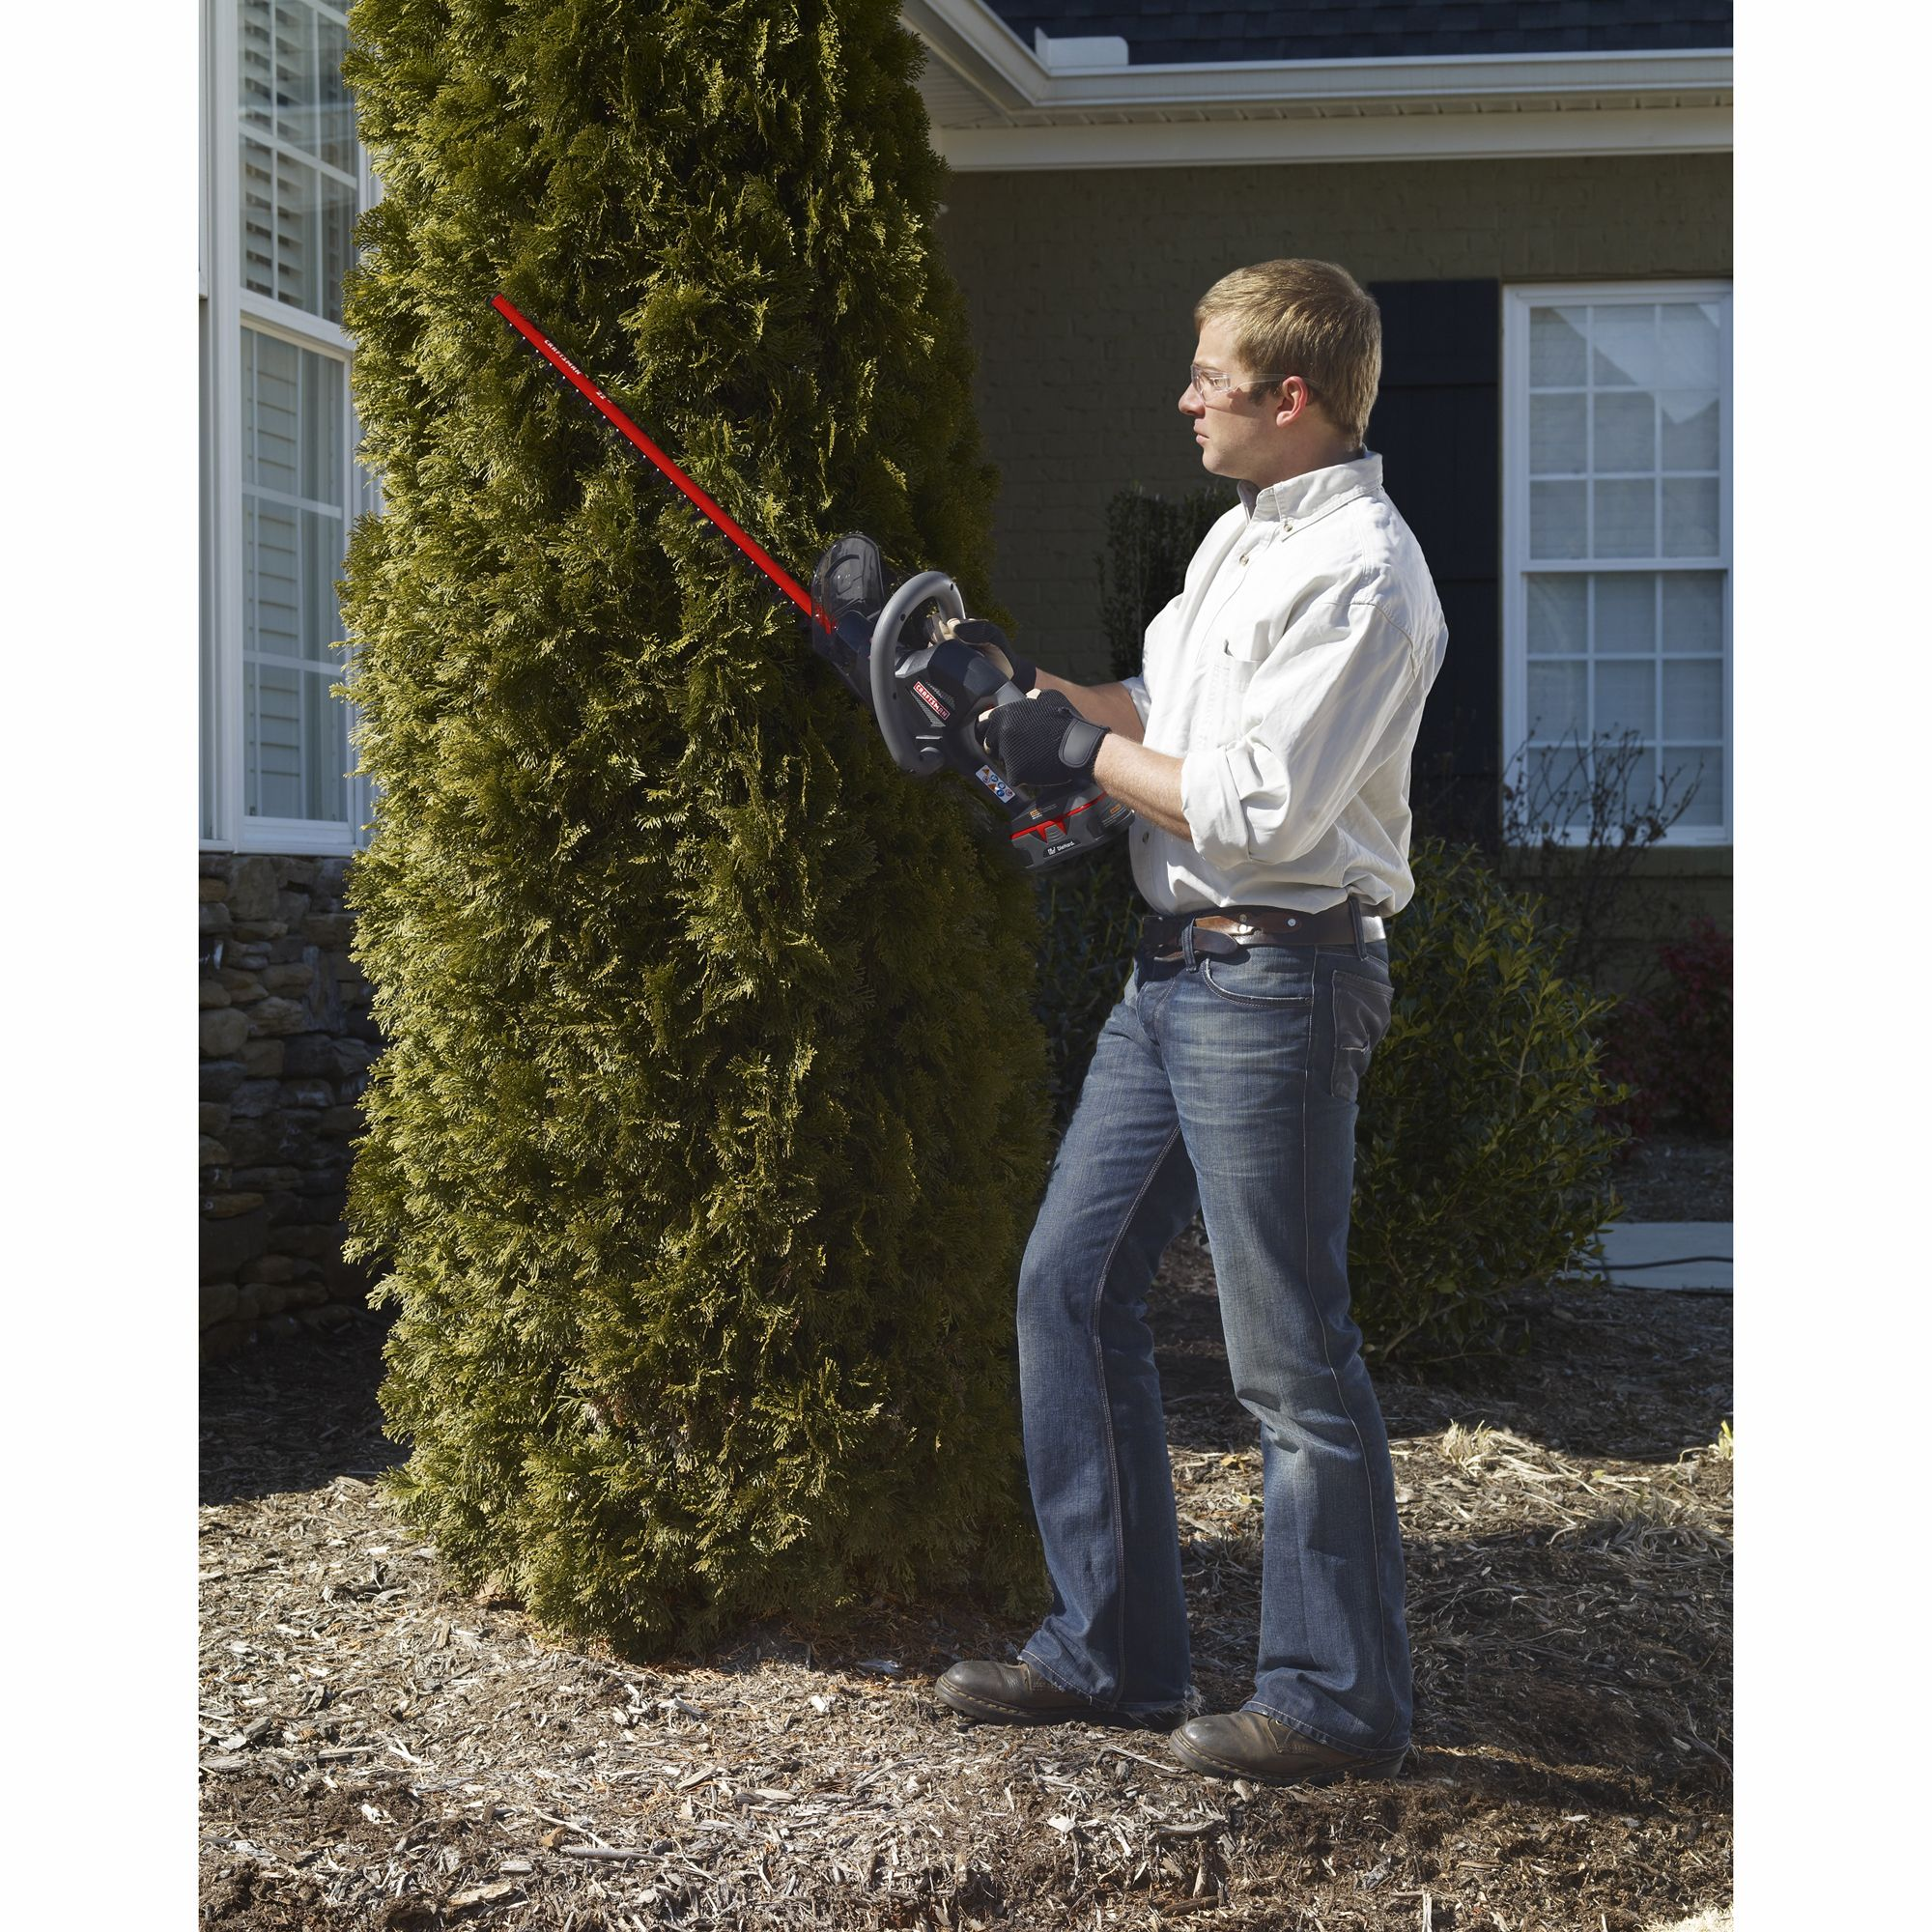 Craftsman C3 19.2 Volt Cordless Hedge Trimmer